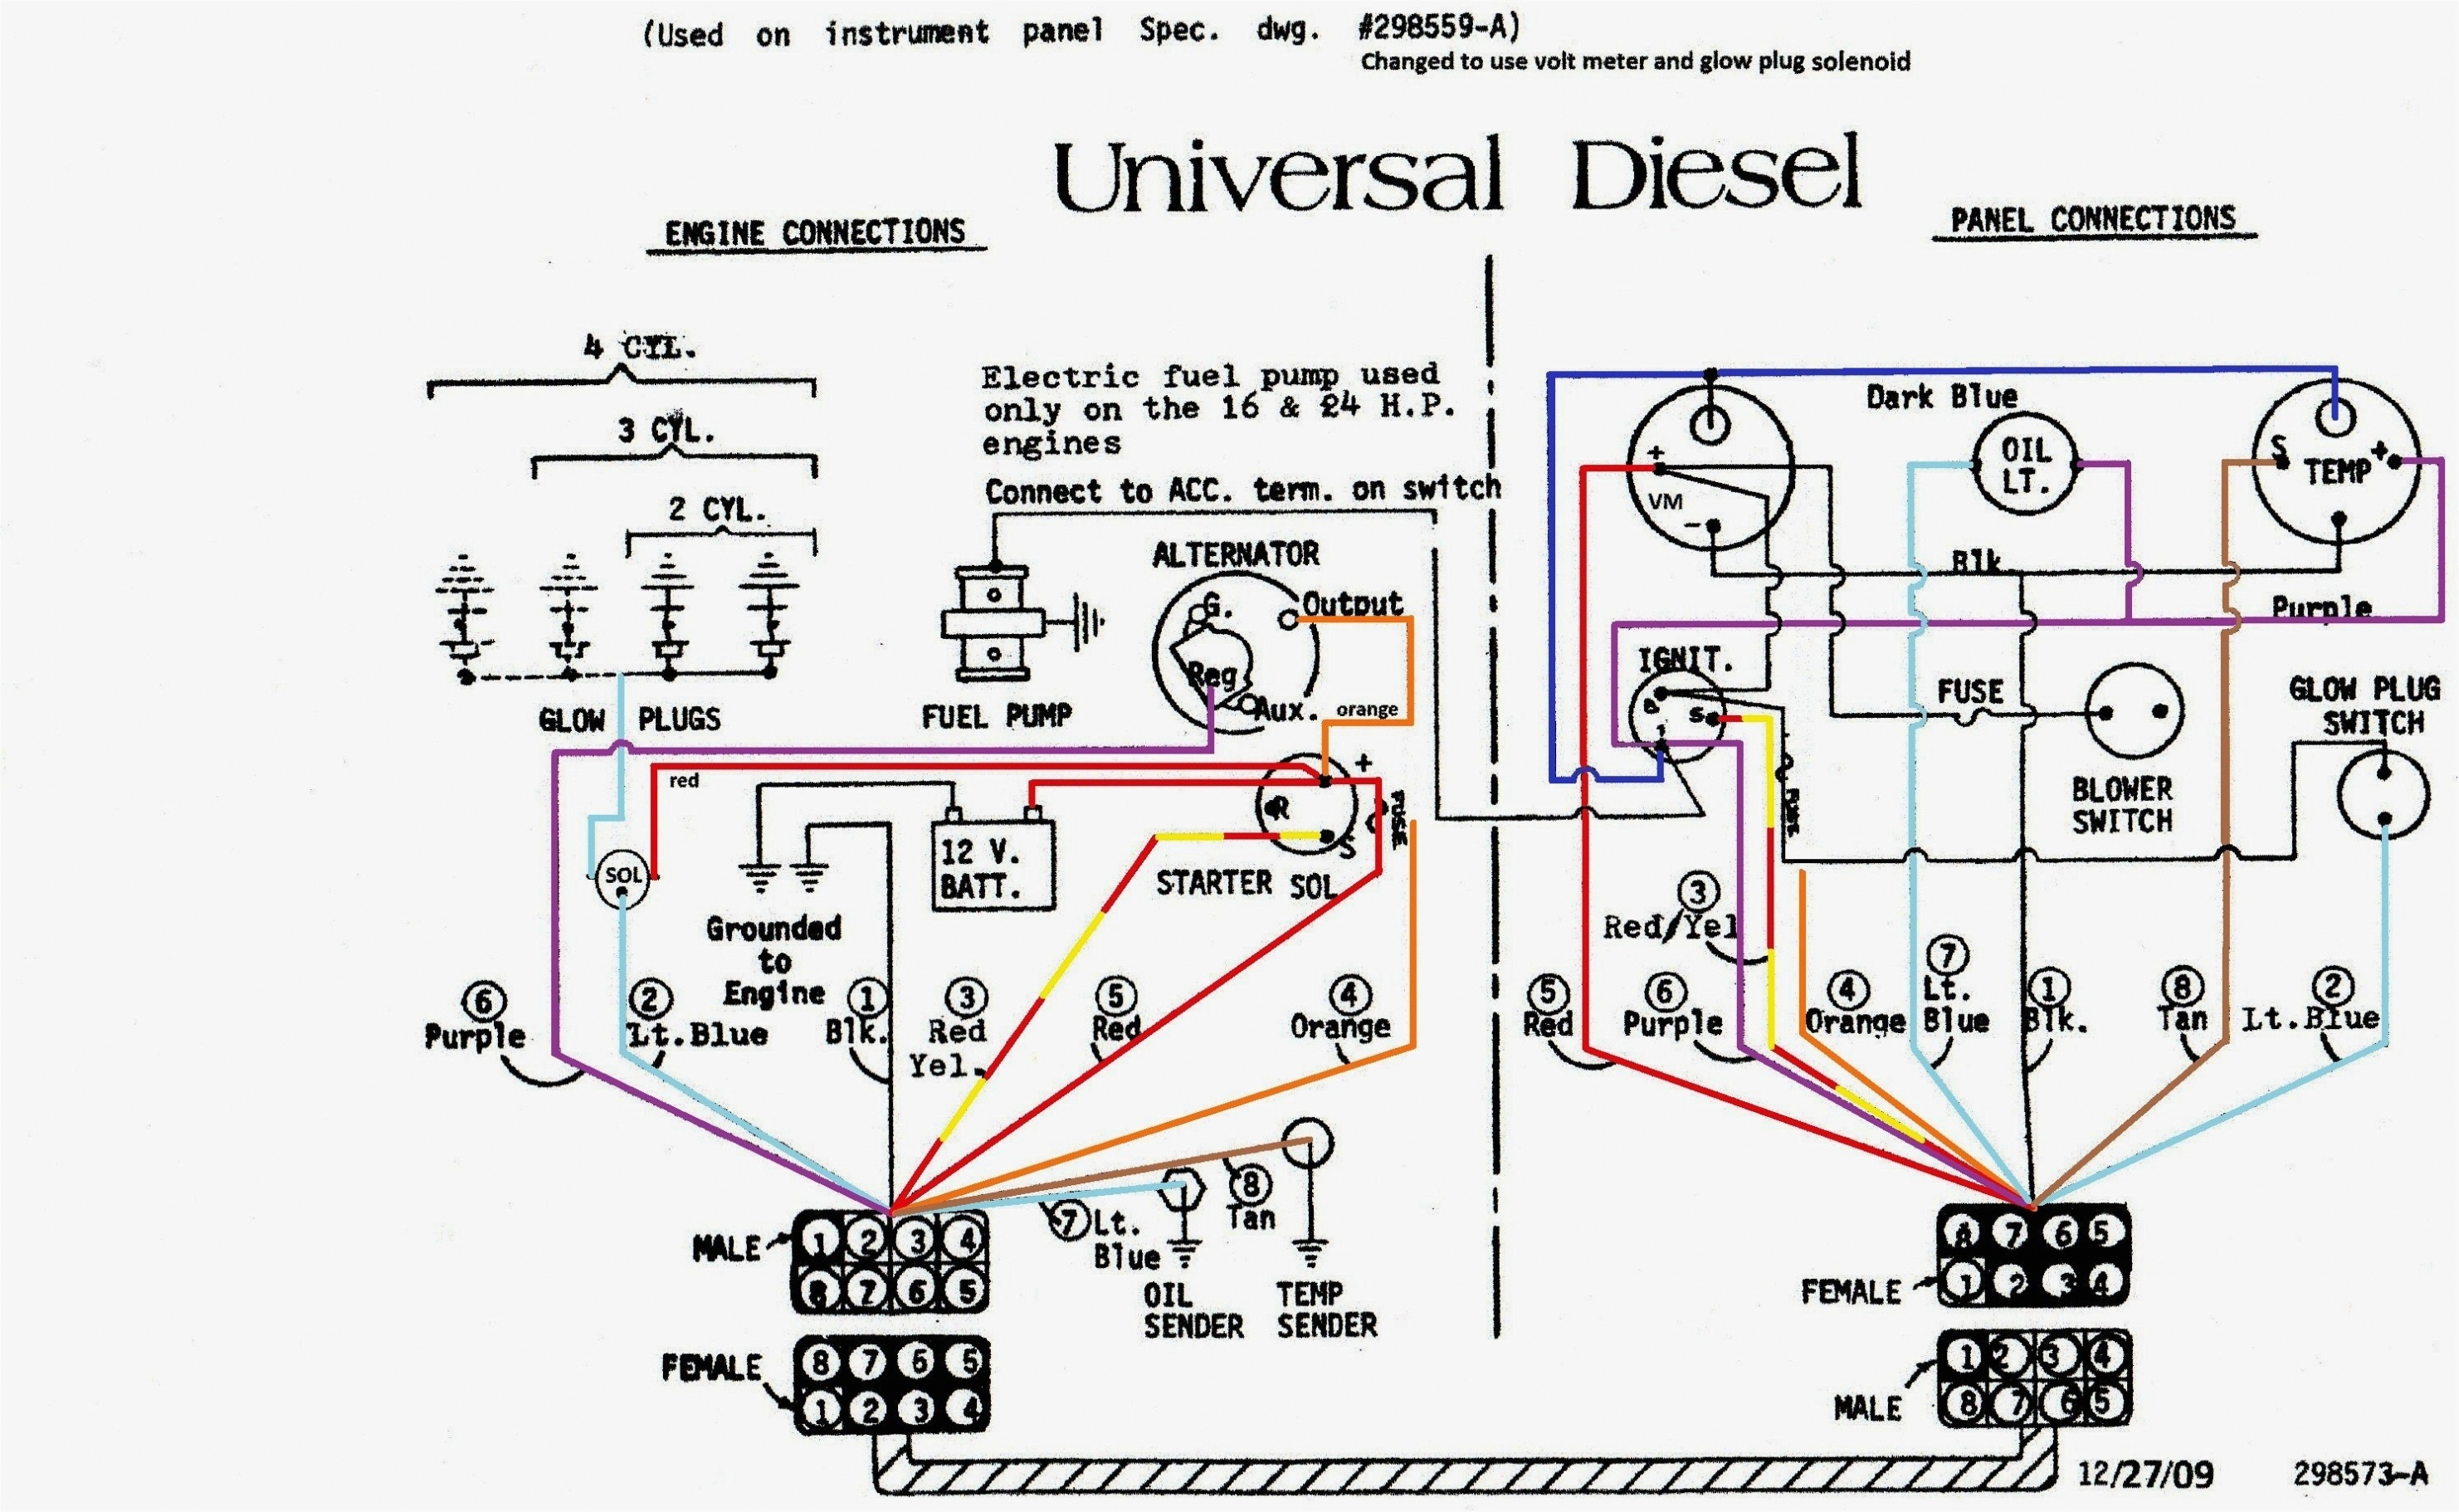 6X4 Trailer Wiring Diagram | Wiring Library - 6X4 Trailer Wiring Diagram